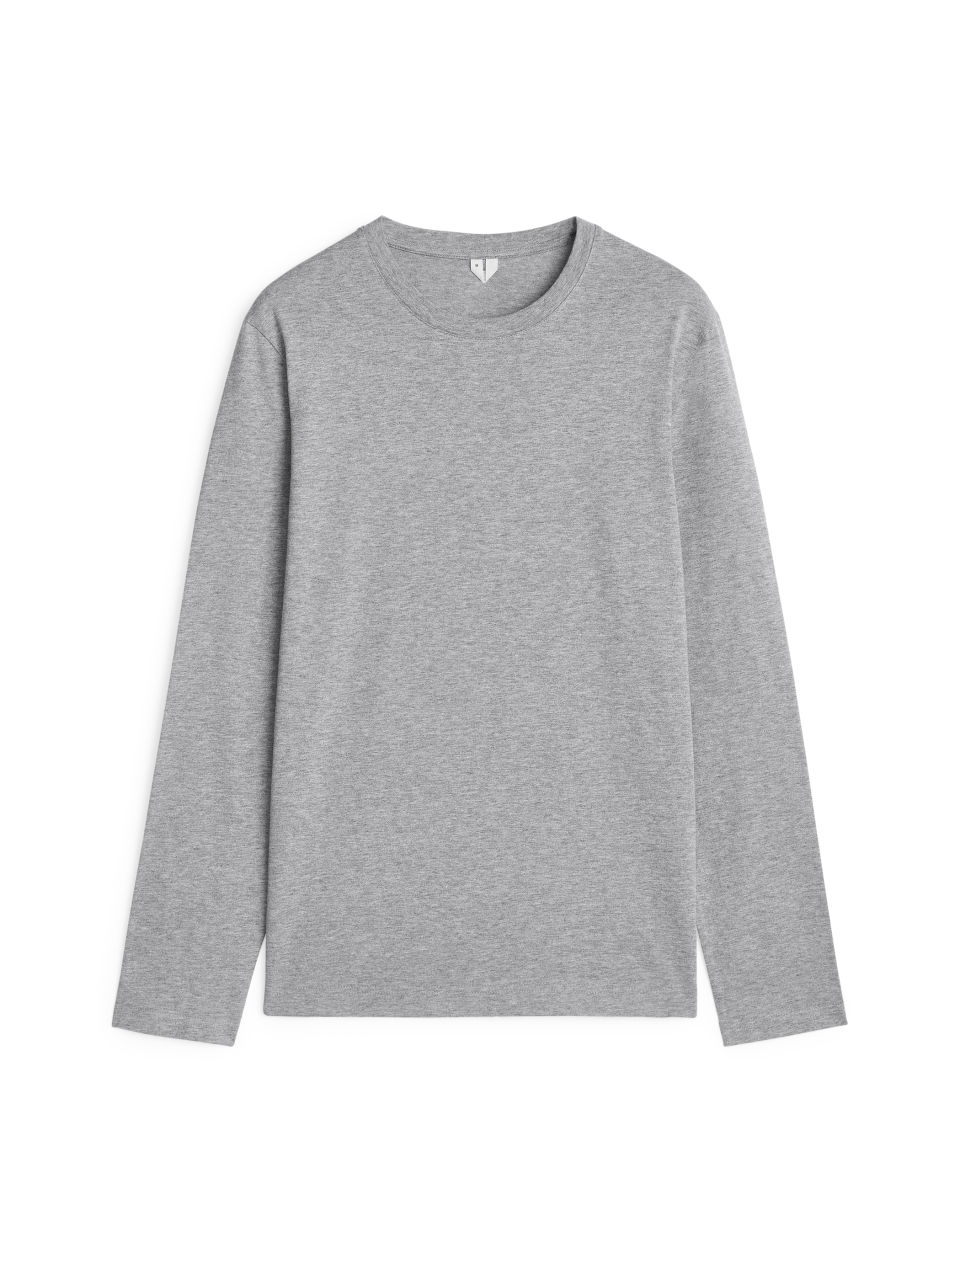 Front image of Arket 170 gsm long sleeve in grey